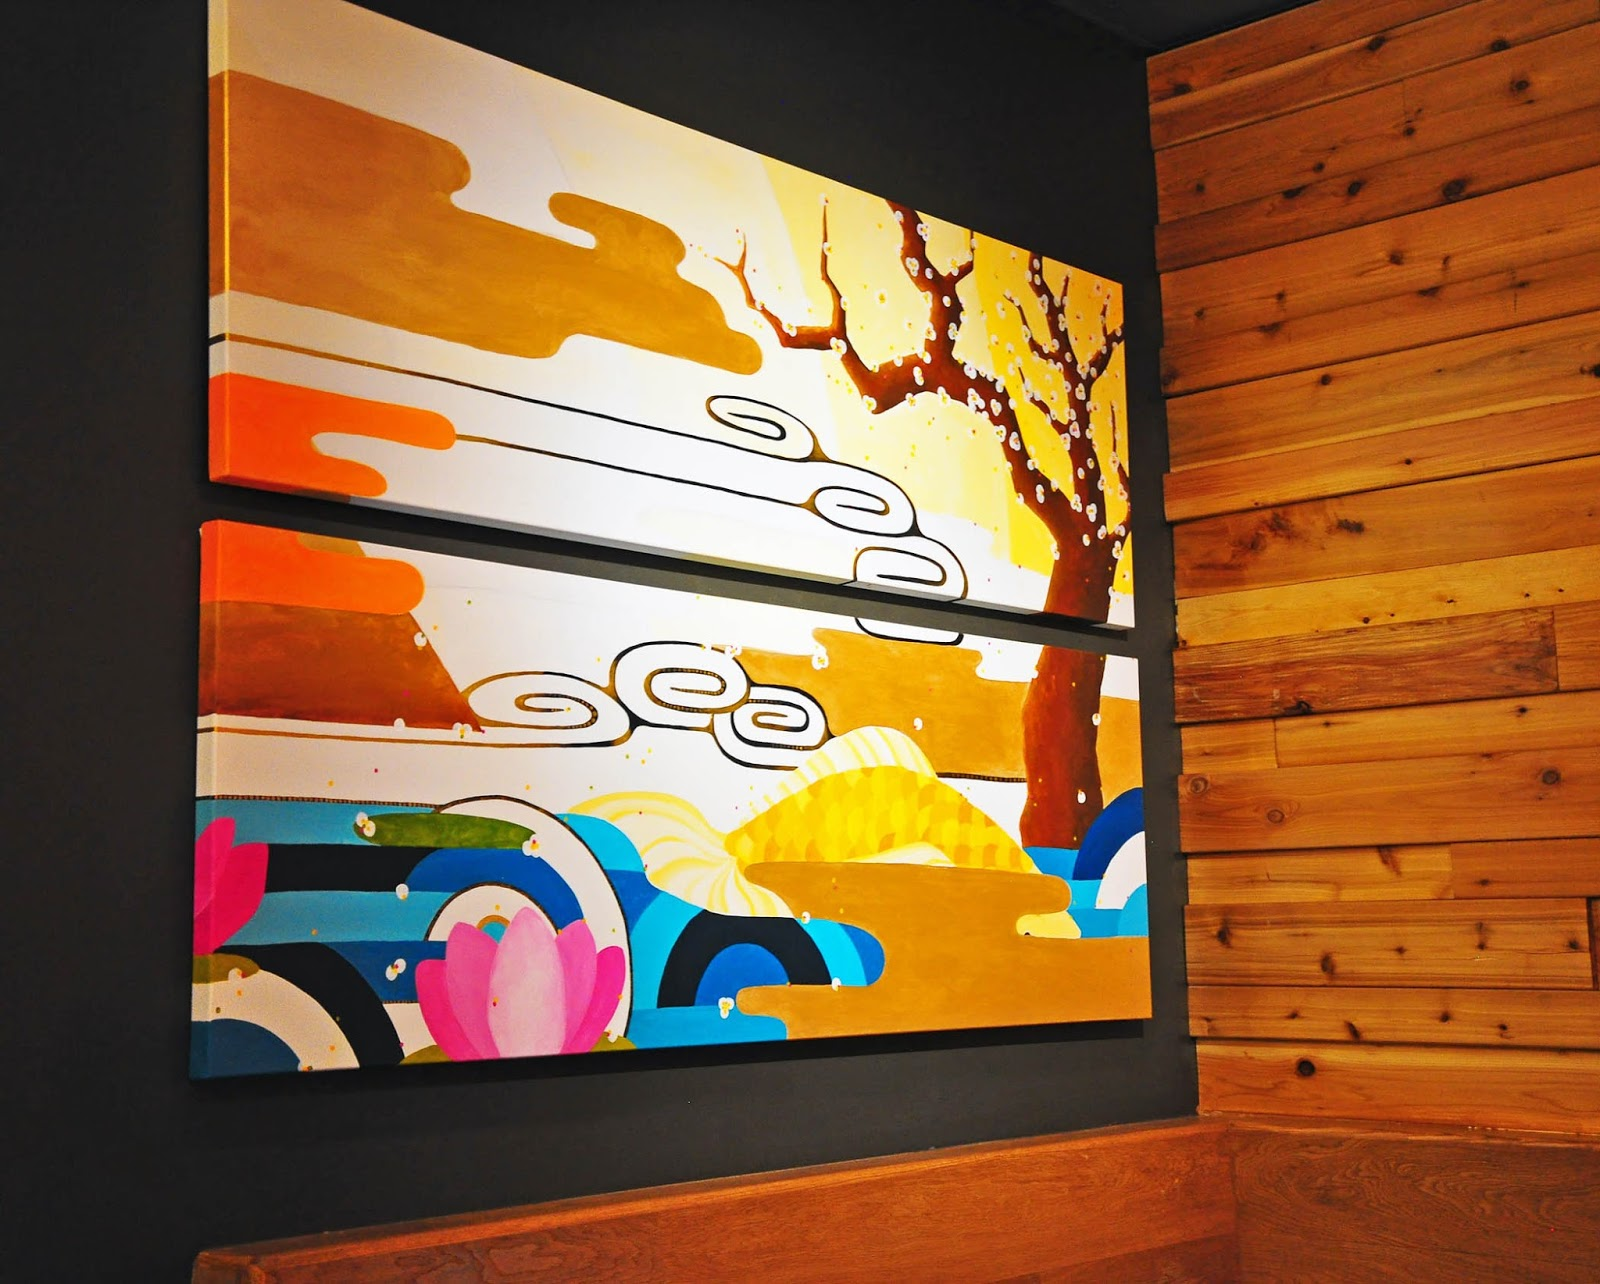 Ideal The new Japanese izakaya Okane in San Francisco us Design District greets its visitors with a wall of Noh masks orange Edison lamps by the window with